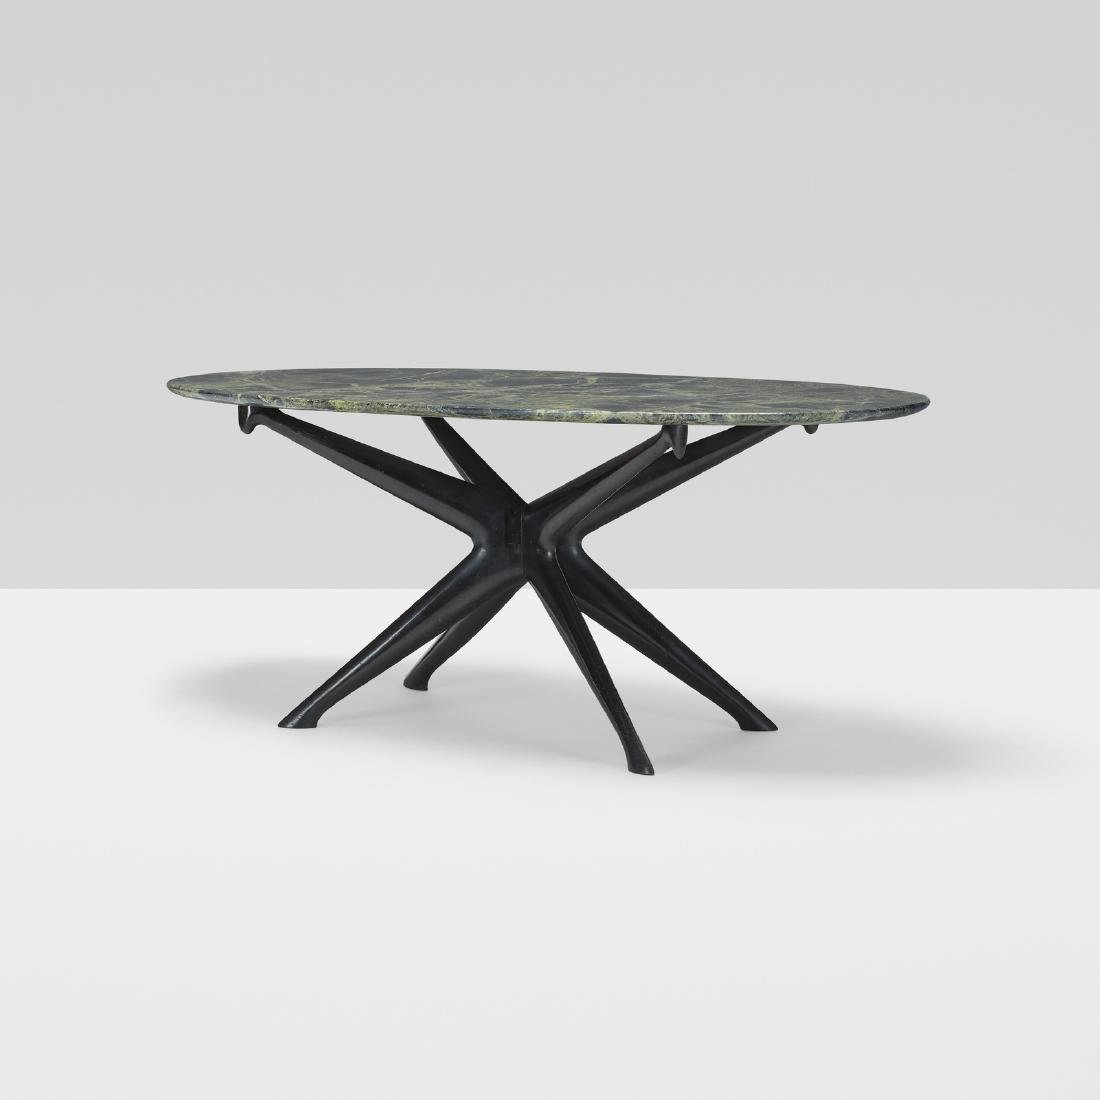 Ico and Luisa Parisi, coffee table